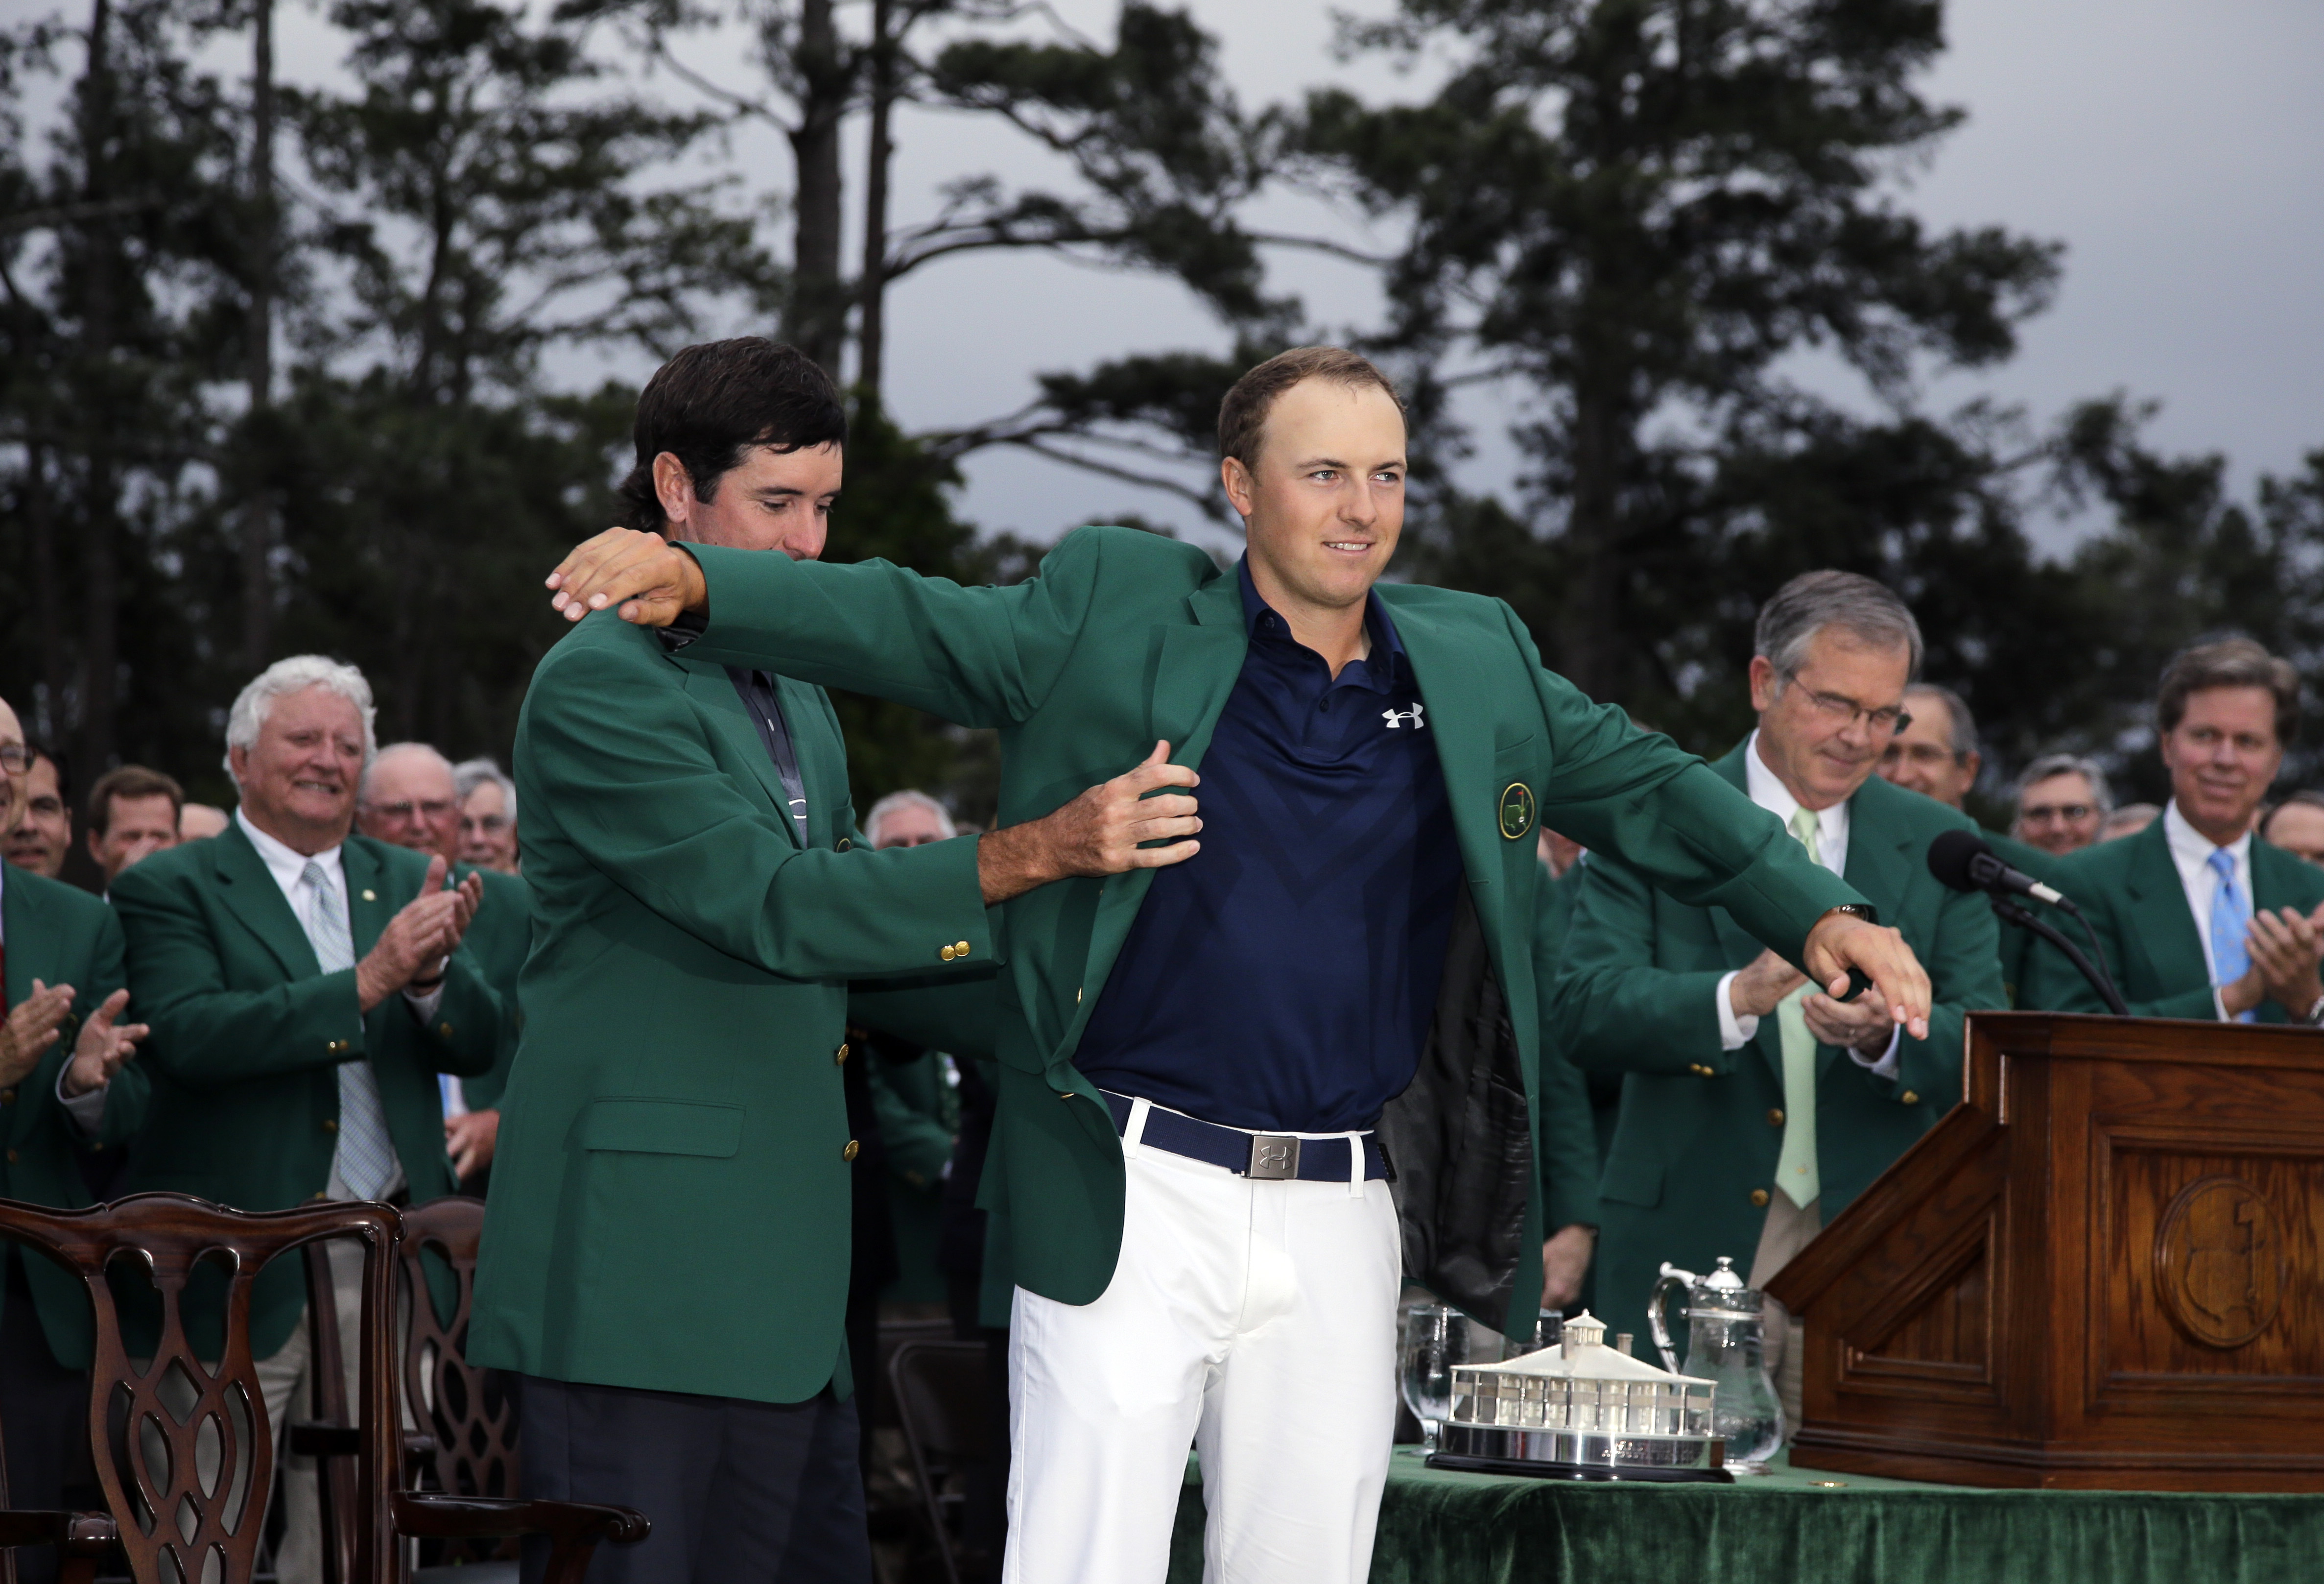 Bubba Watson helps Jordan Spieth put on his green jacket after winning the Masters golf tournament Sunday, April 12, 2015, in Augusta, Ga.